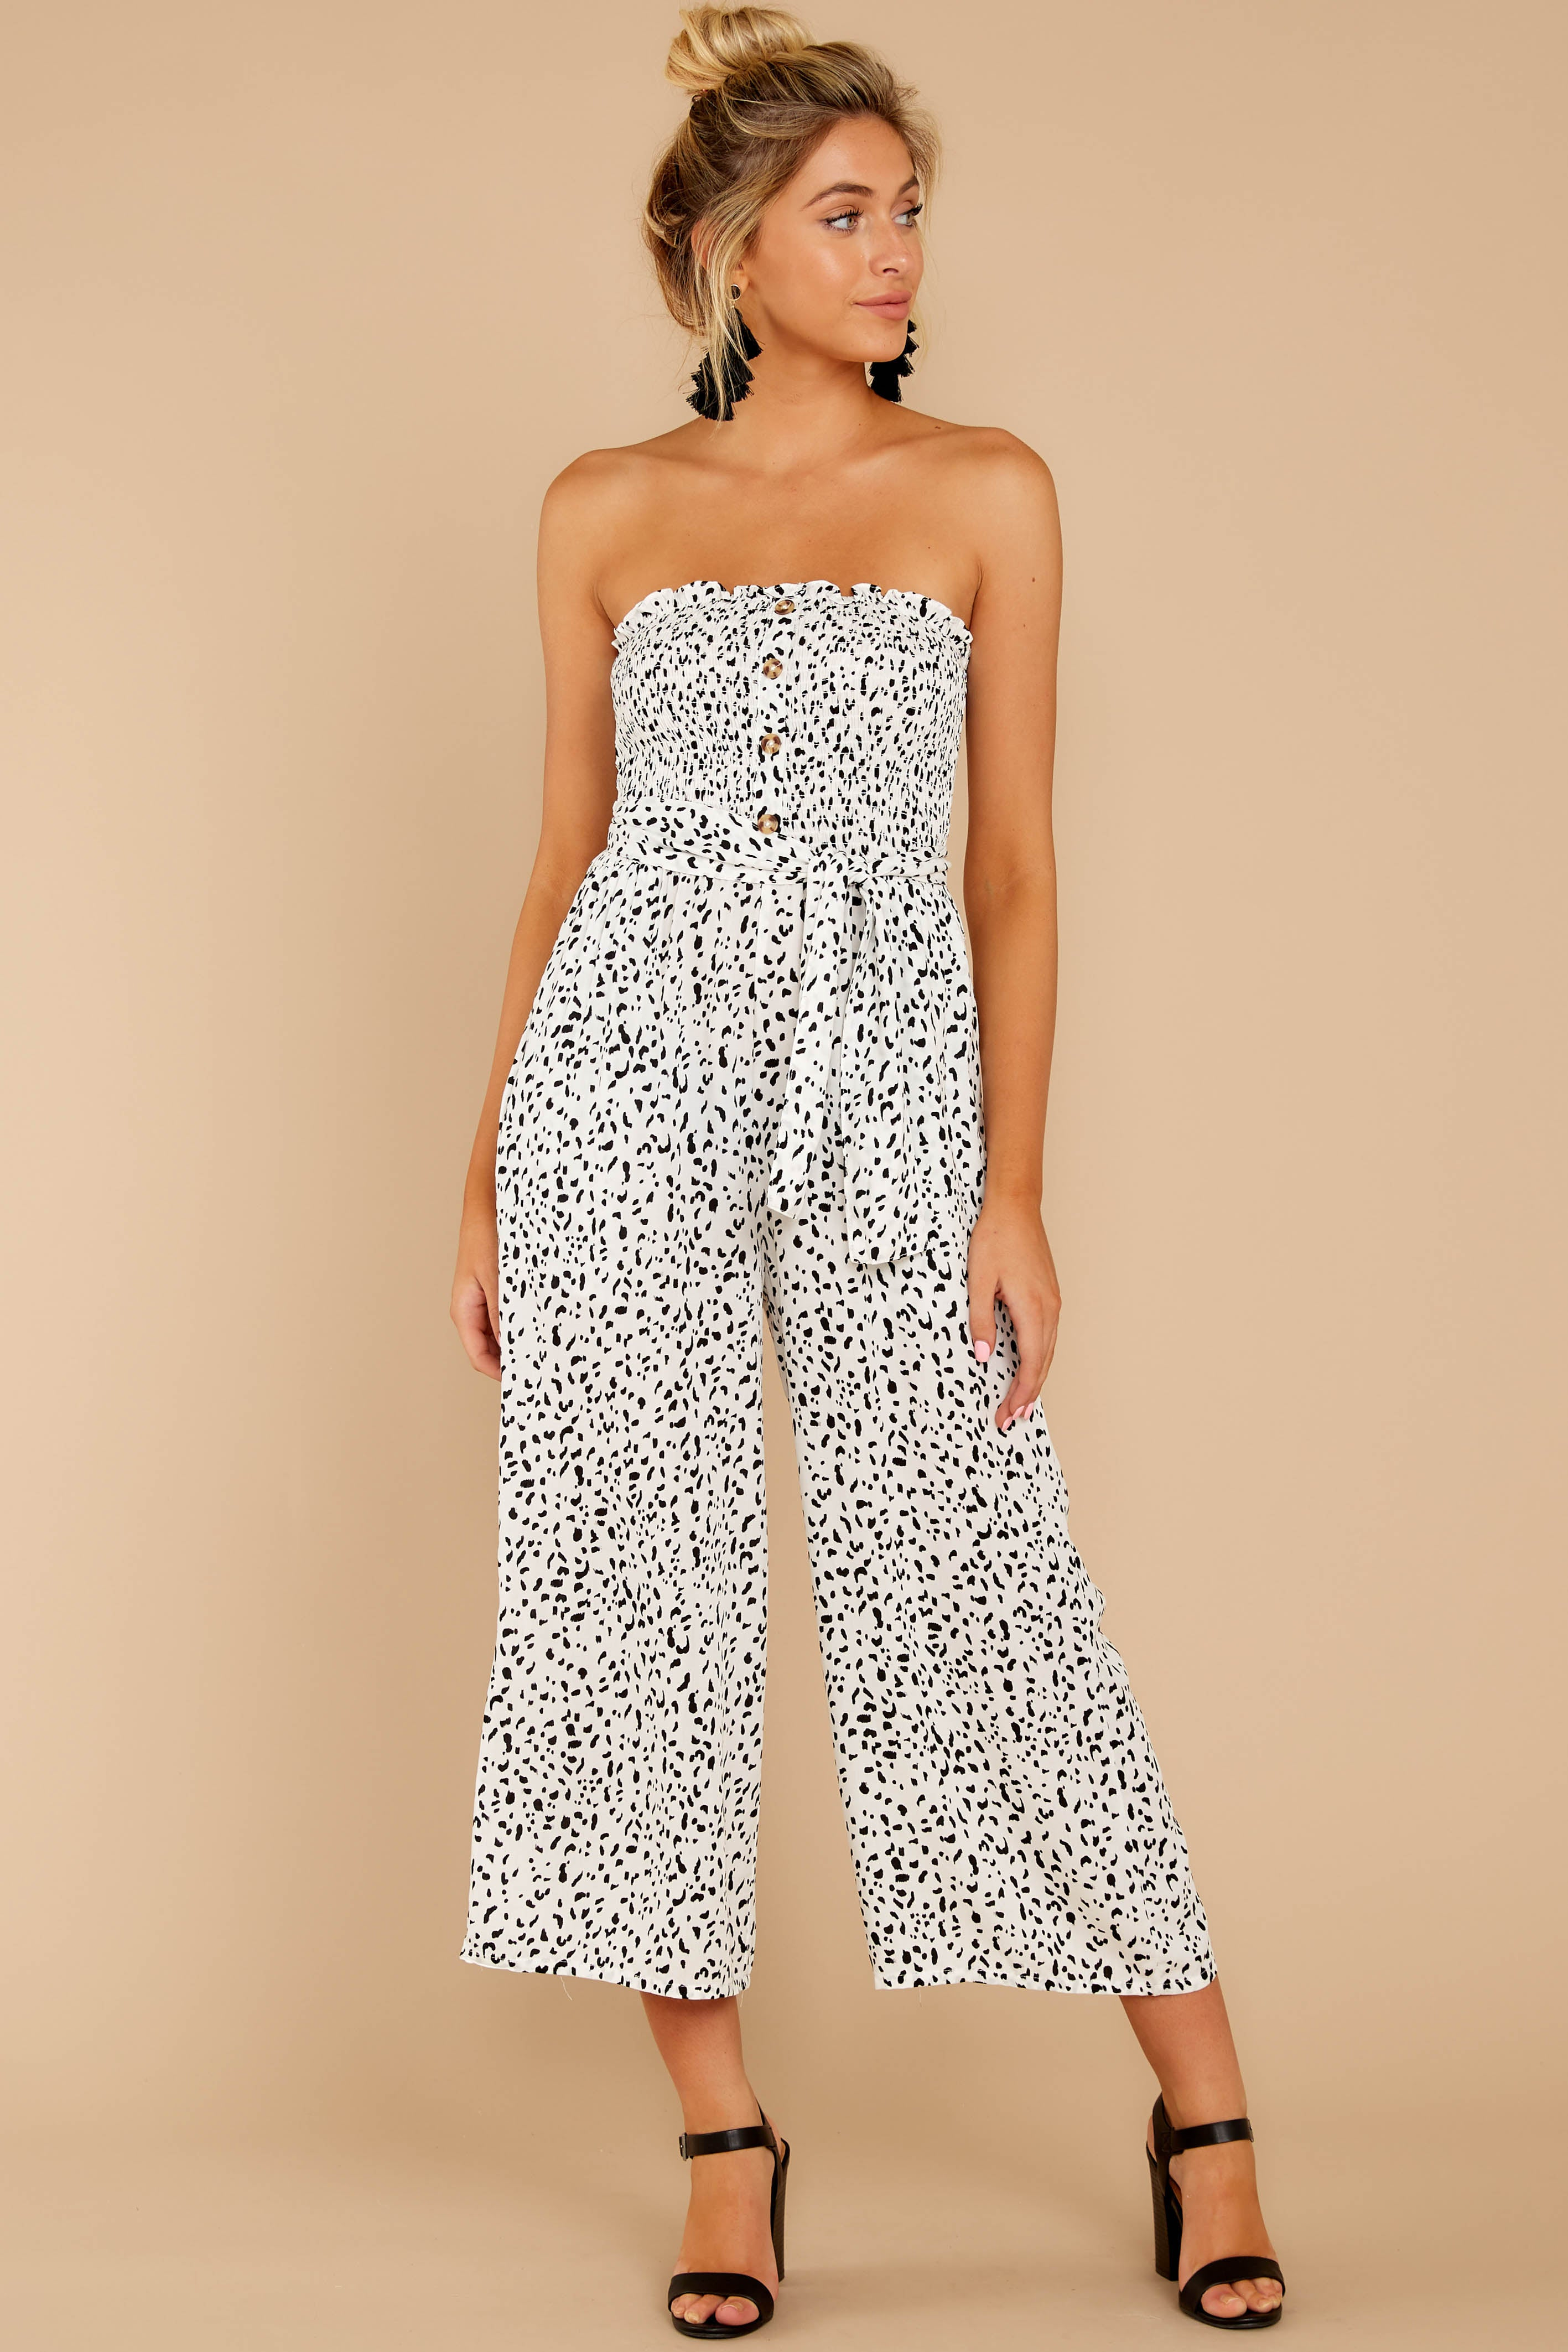 4 Leap Into Love White Cheetah Print Jumpsuit at reddress.com